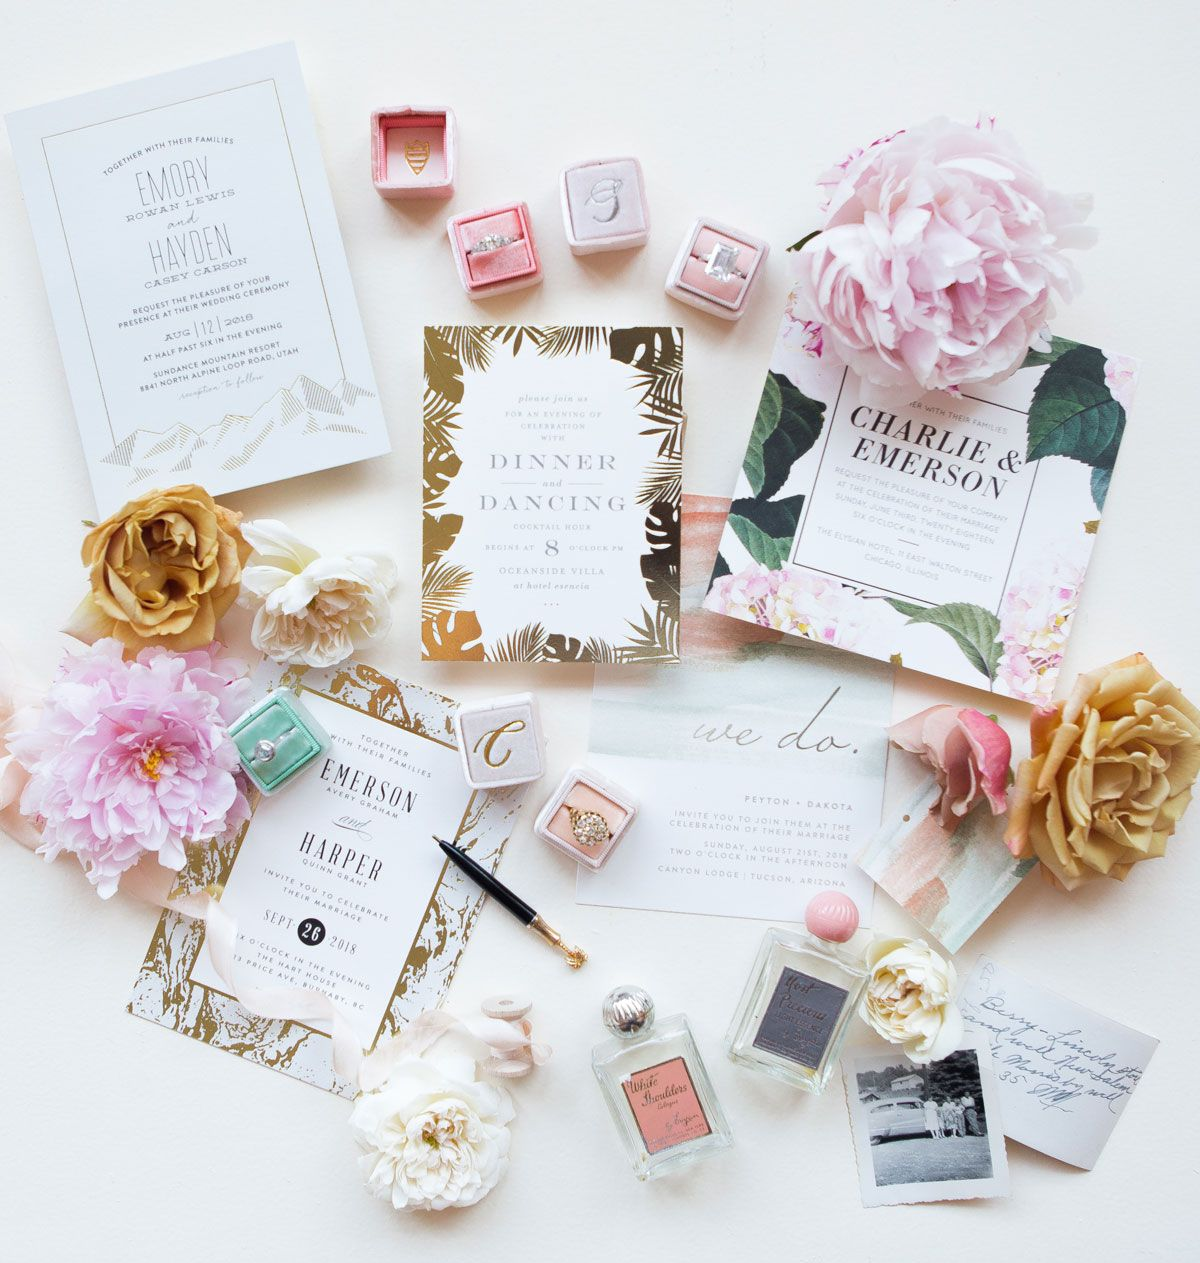 Minted x The Mrs Box Styled Wedding Themes Pastel